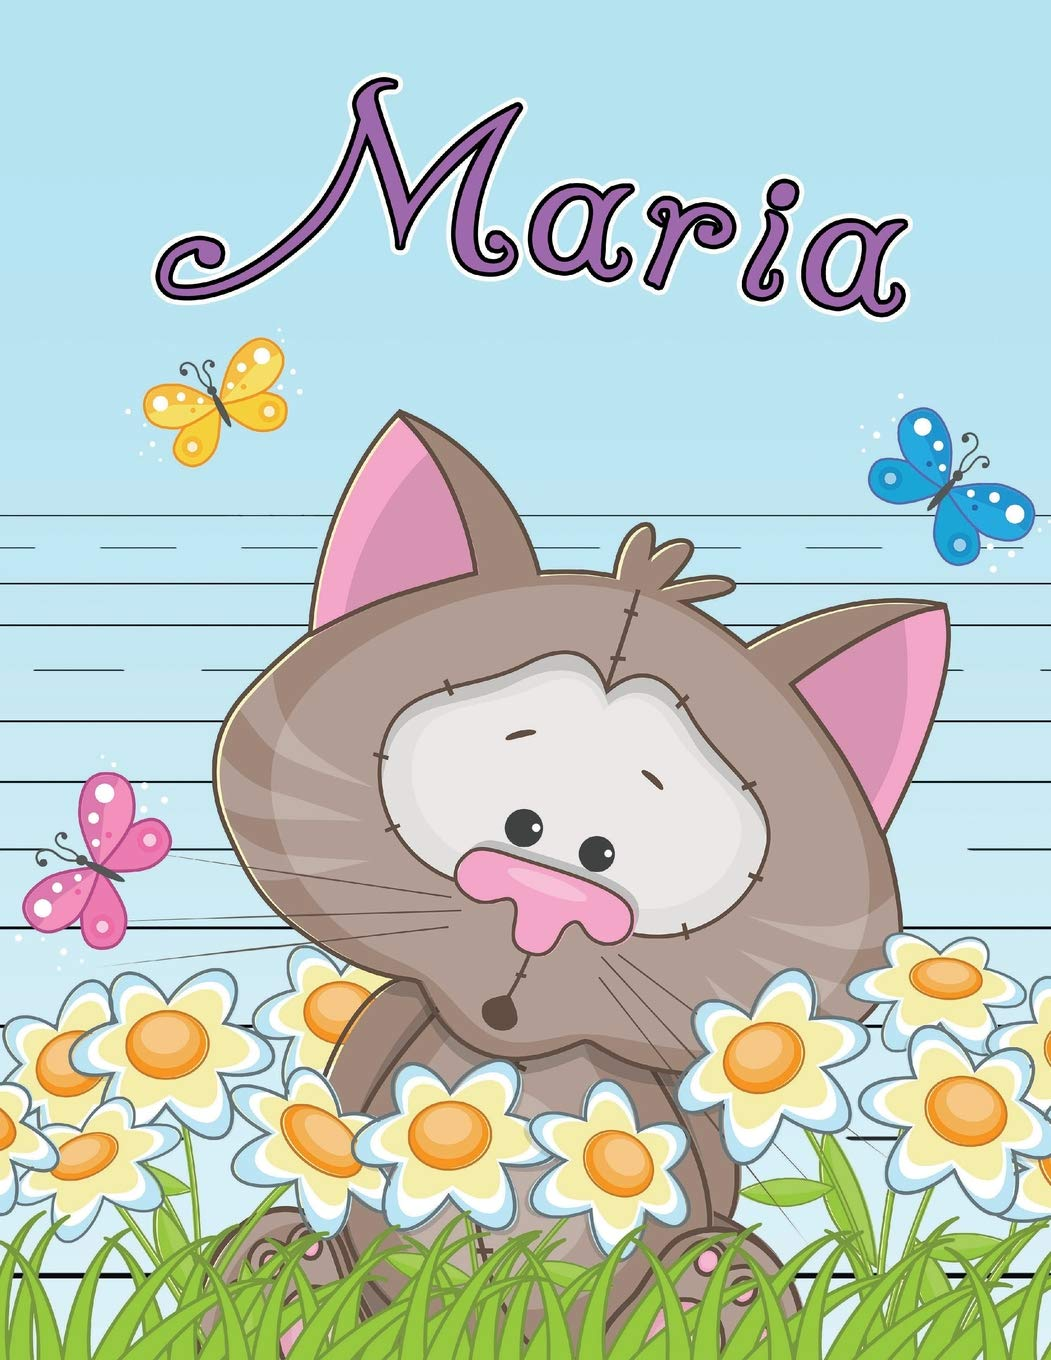 Read Online Maria: Personalized Book with Child's Name, Use as Primary Writing Tablet or School Notebook for Kids Learning to Write, 65 Sheets of Wide-Ruled ... First Graders, Children, Girls, Daughter ebook